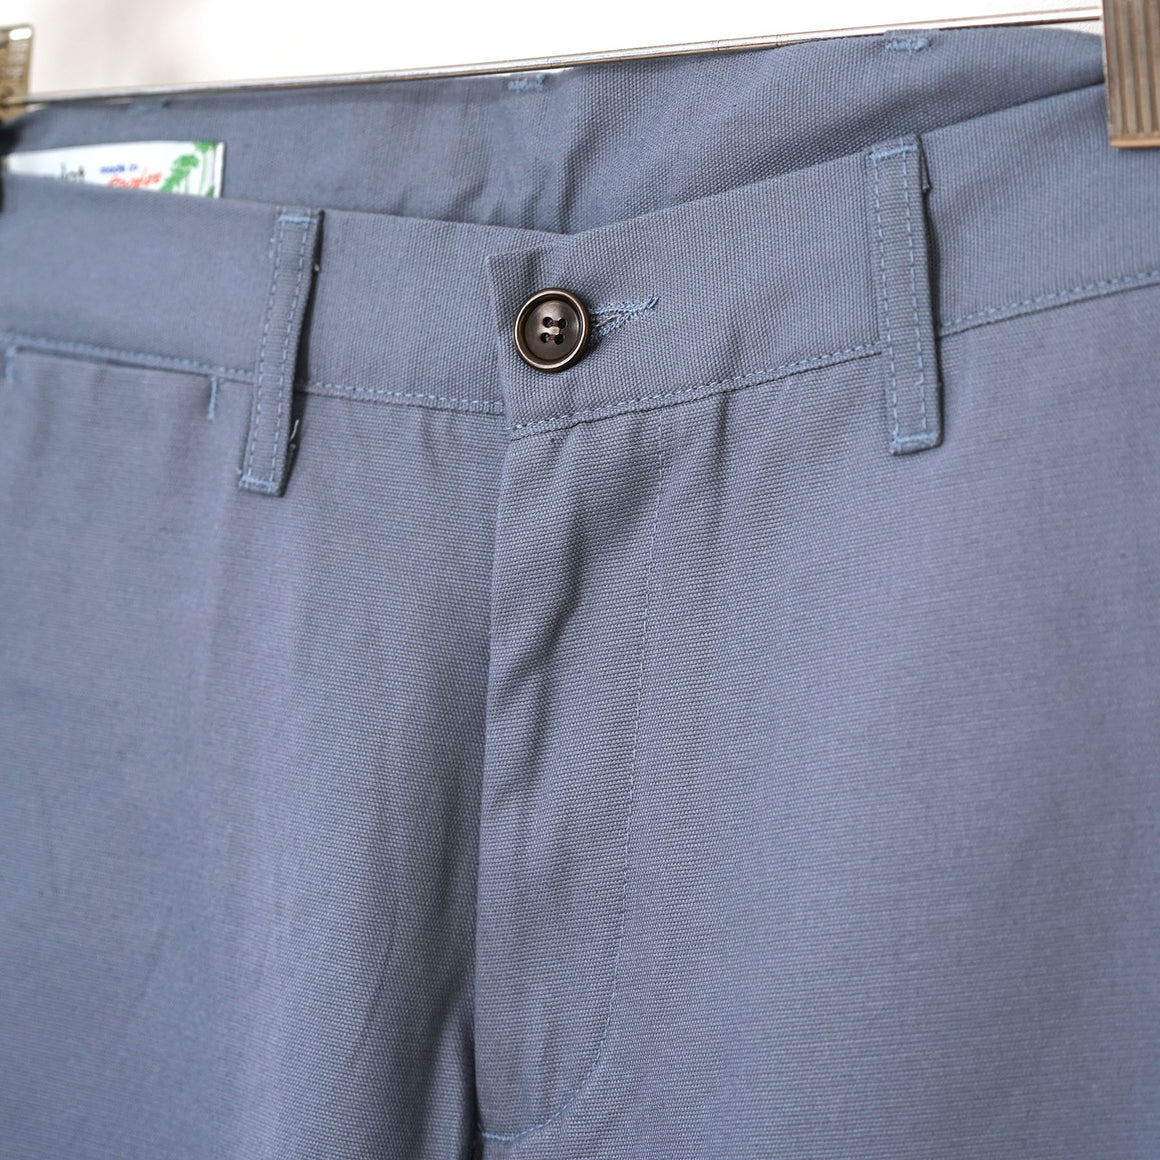 Sample Sale: Rivet Chino in 8oz Slate Blue Canvas Size 34